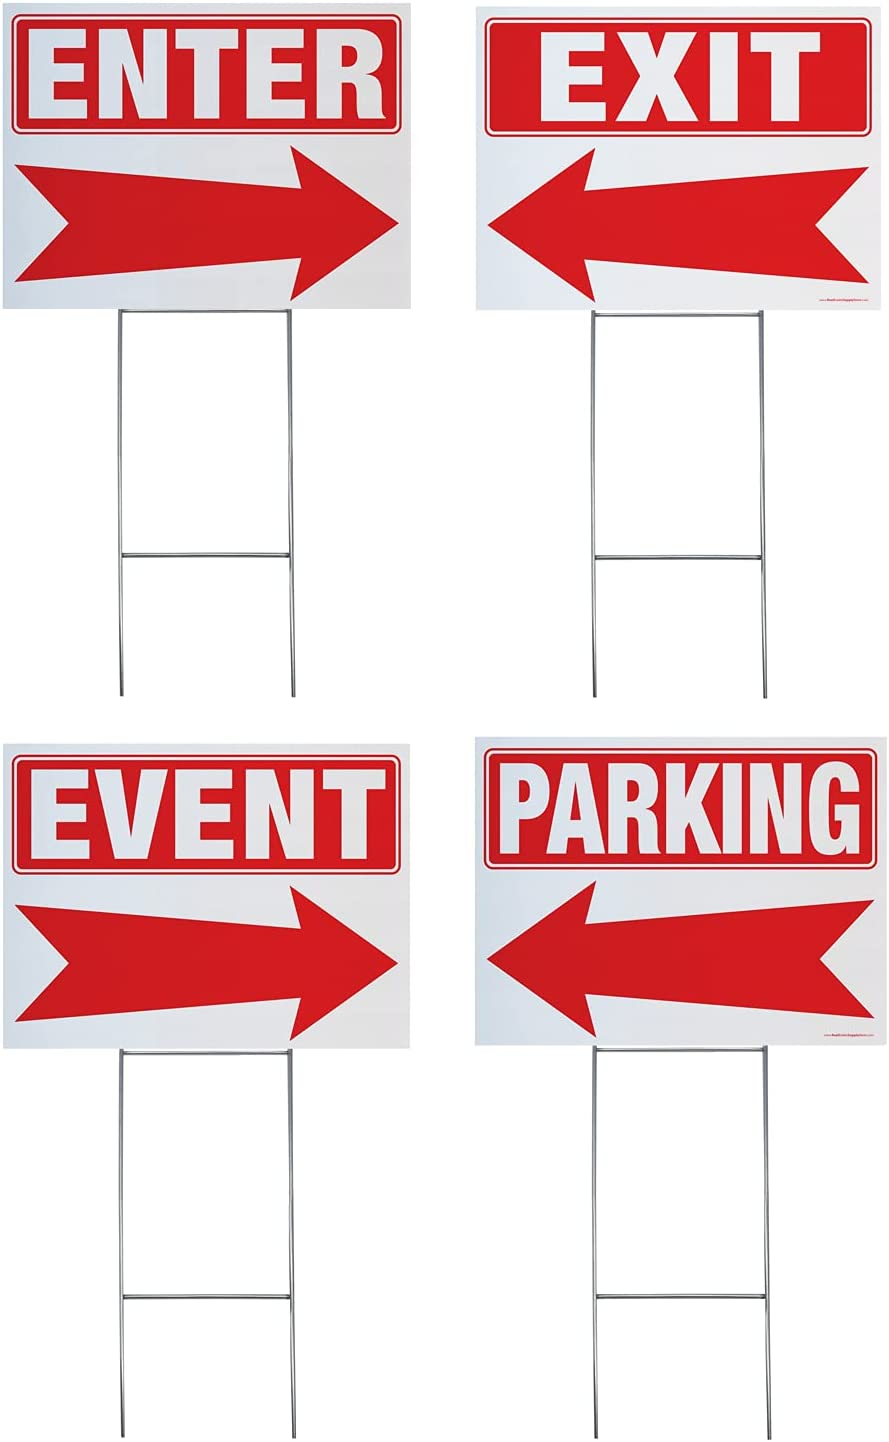 Parking Event Exit Enter Ranking TOP17 Arrow Inclu Complete Yard Las Vegas Mall Signs Kit